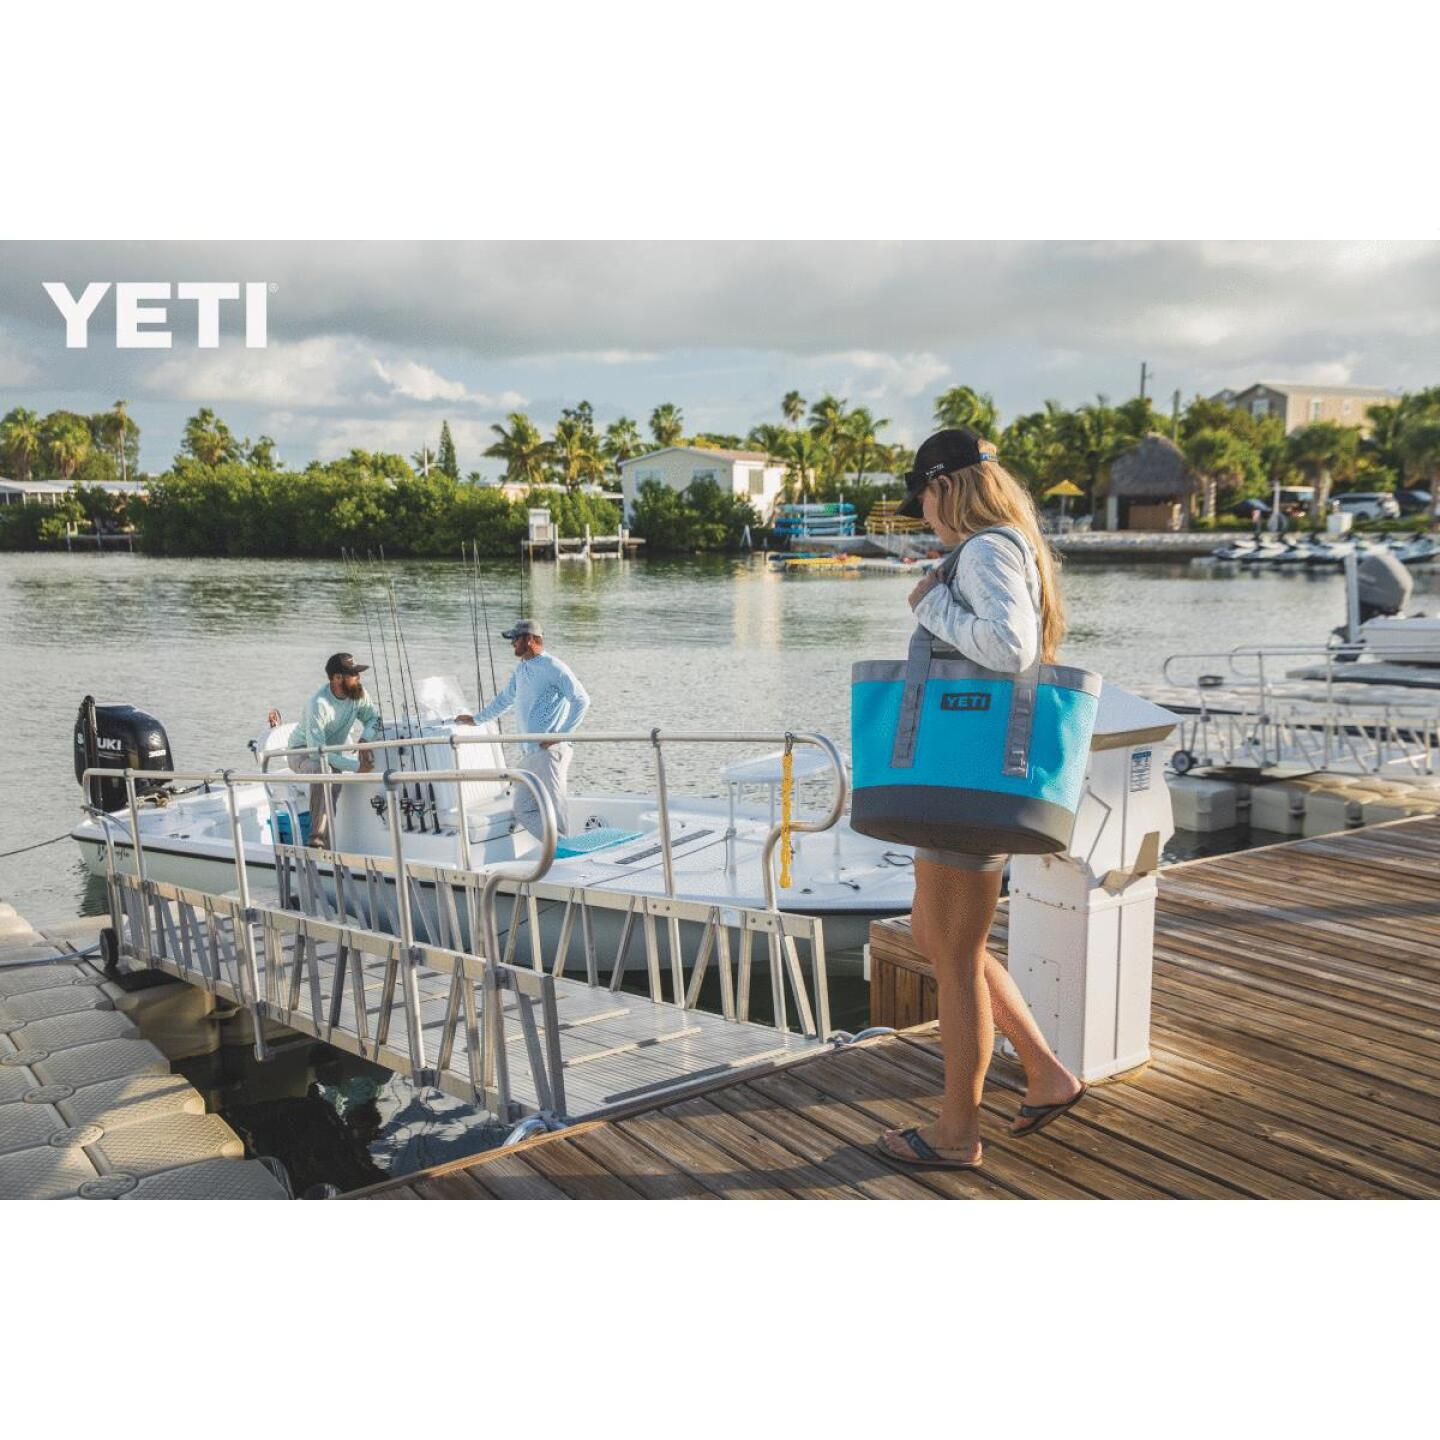 Yeti Camino Carryall 35 9.84 In. W. x 14.97 In. H. x 18.11 In. L. Reef Blue Tote Bag Image 5